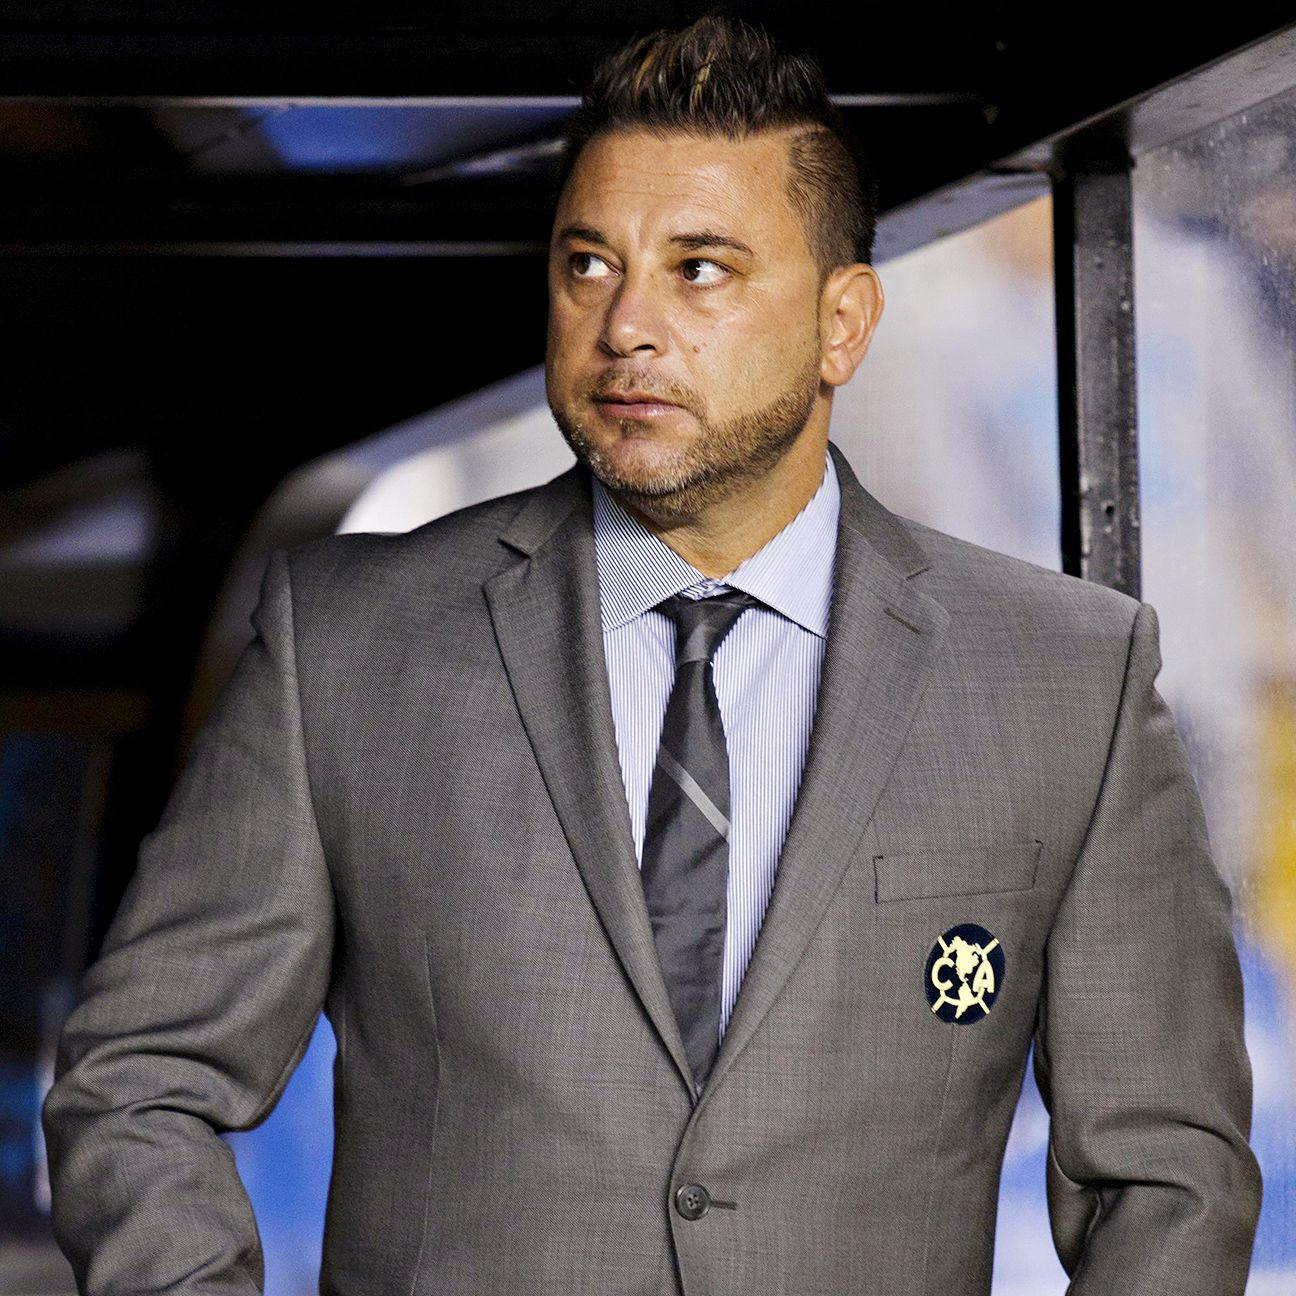 Antonio Mohamed's Club America head into Saturday's <i>clasico nacional</i> with Chivas with some doubts following Friday's final-minute defeat at Queretaro.